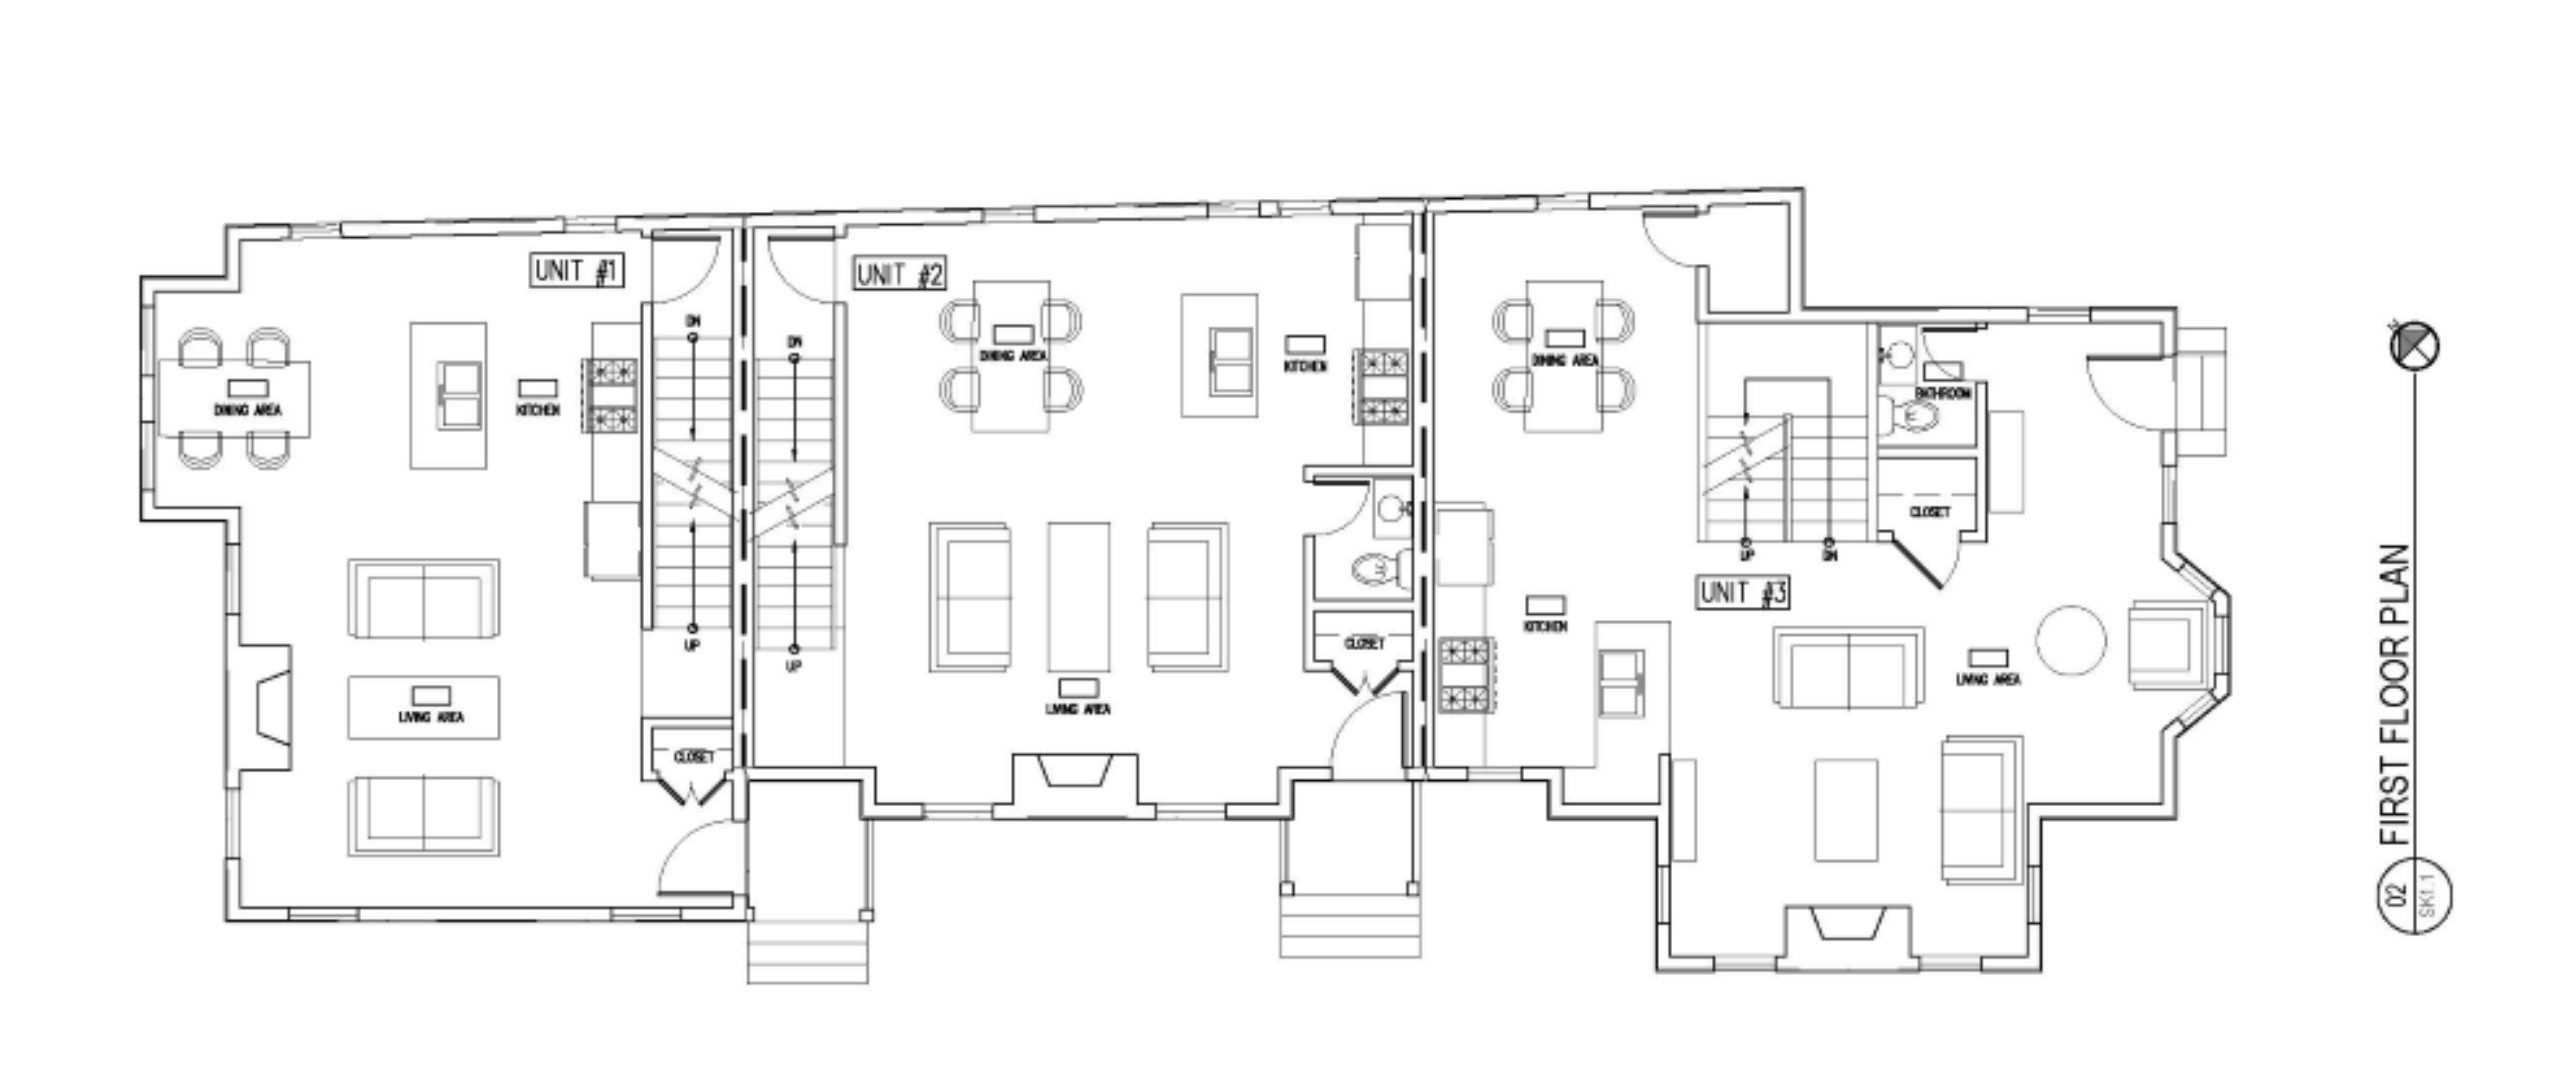 FIRST LEVEL FLOOR PLAN OF TOWNHOUSES FOR SALE AT 75 RUSH ST IN SOMERVILLE